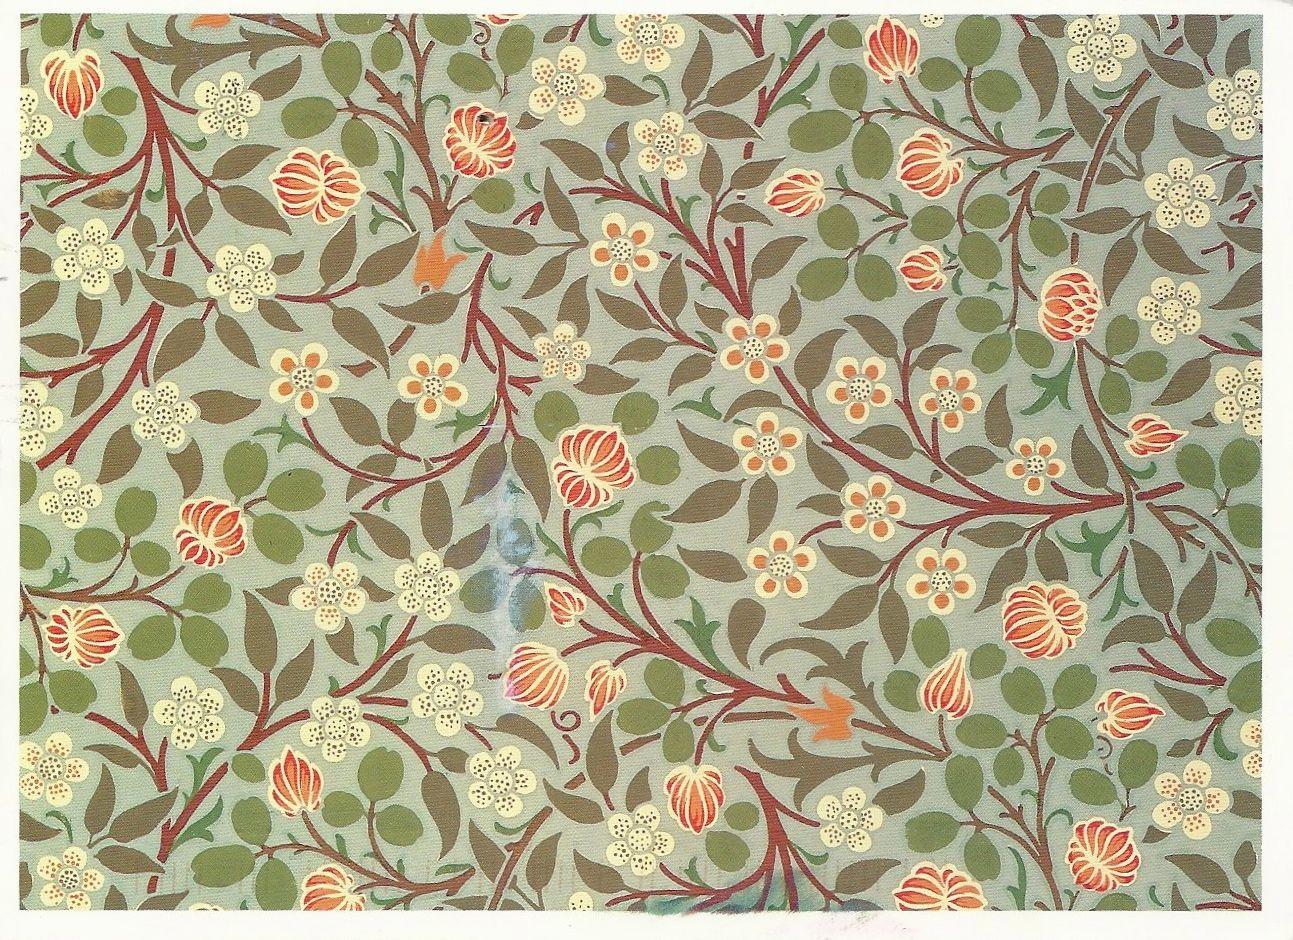 Arts and crafts movement design - Arts And Crafts Movement Floral Pattern